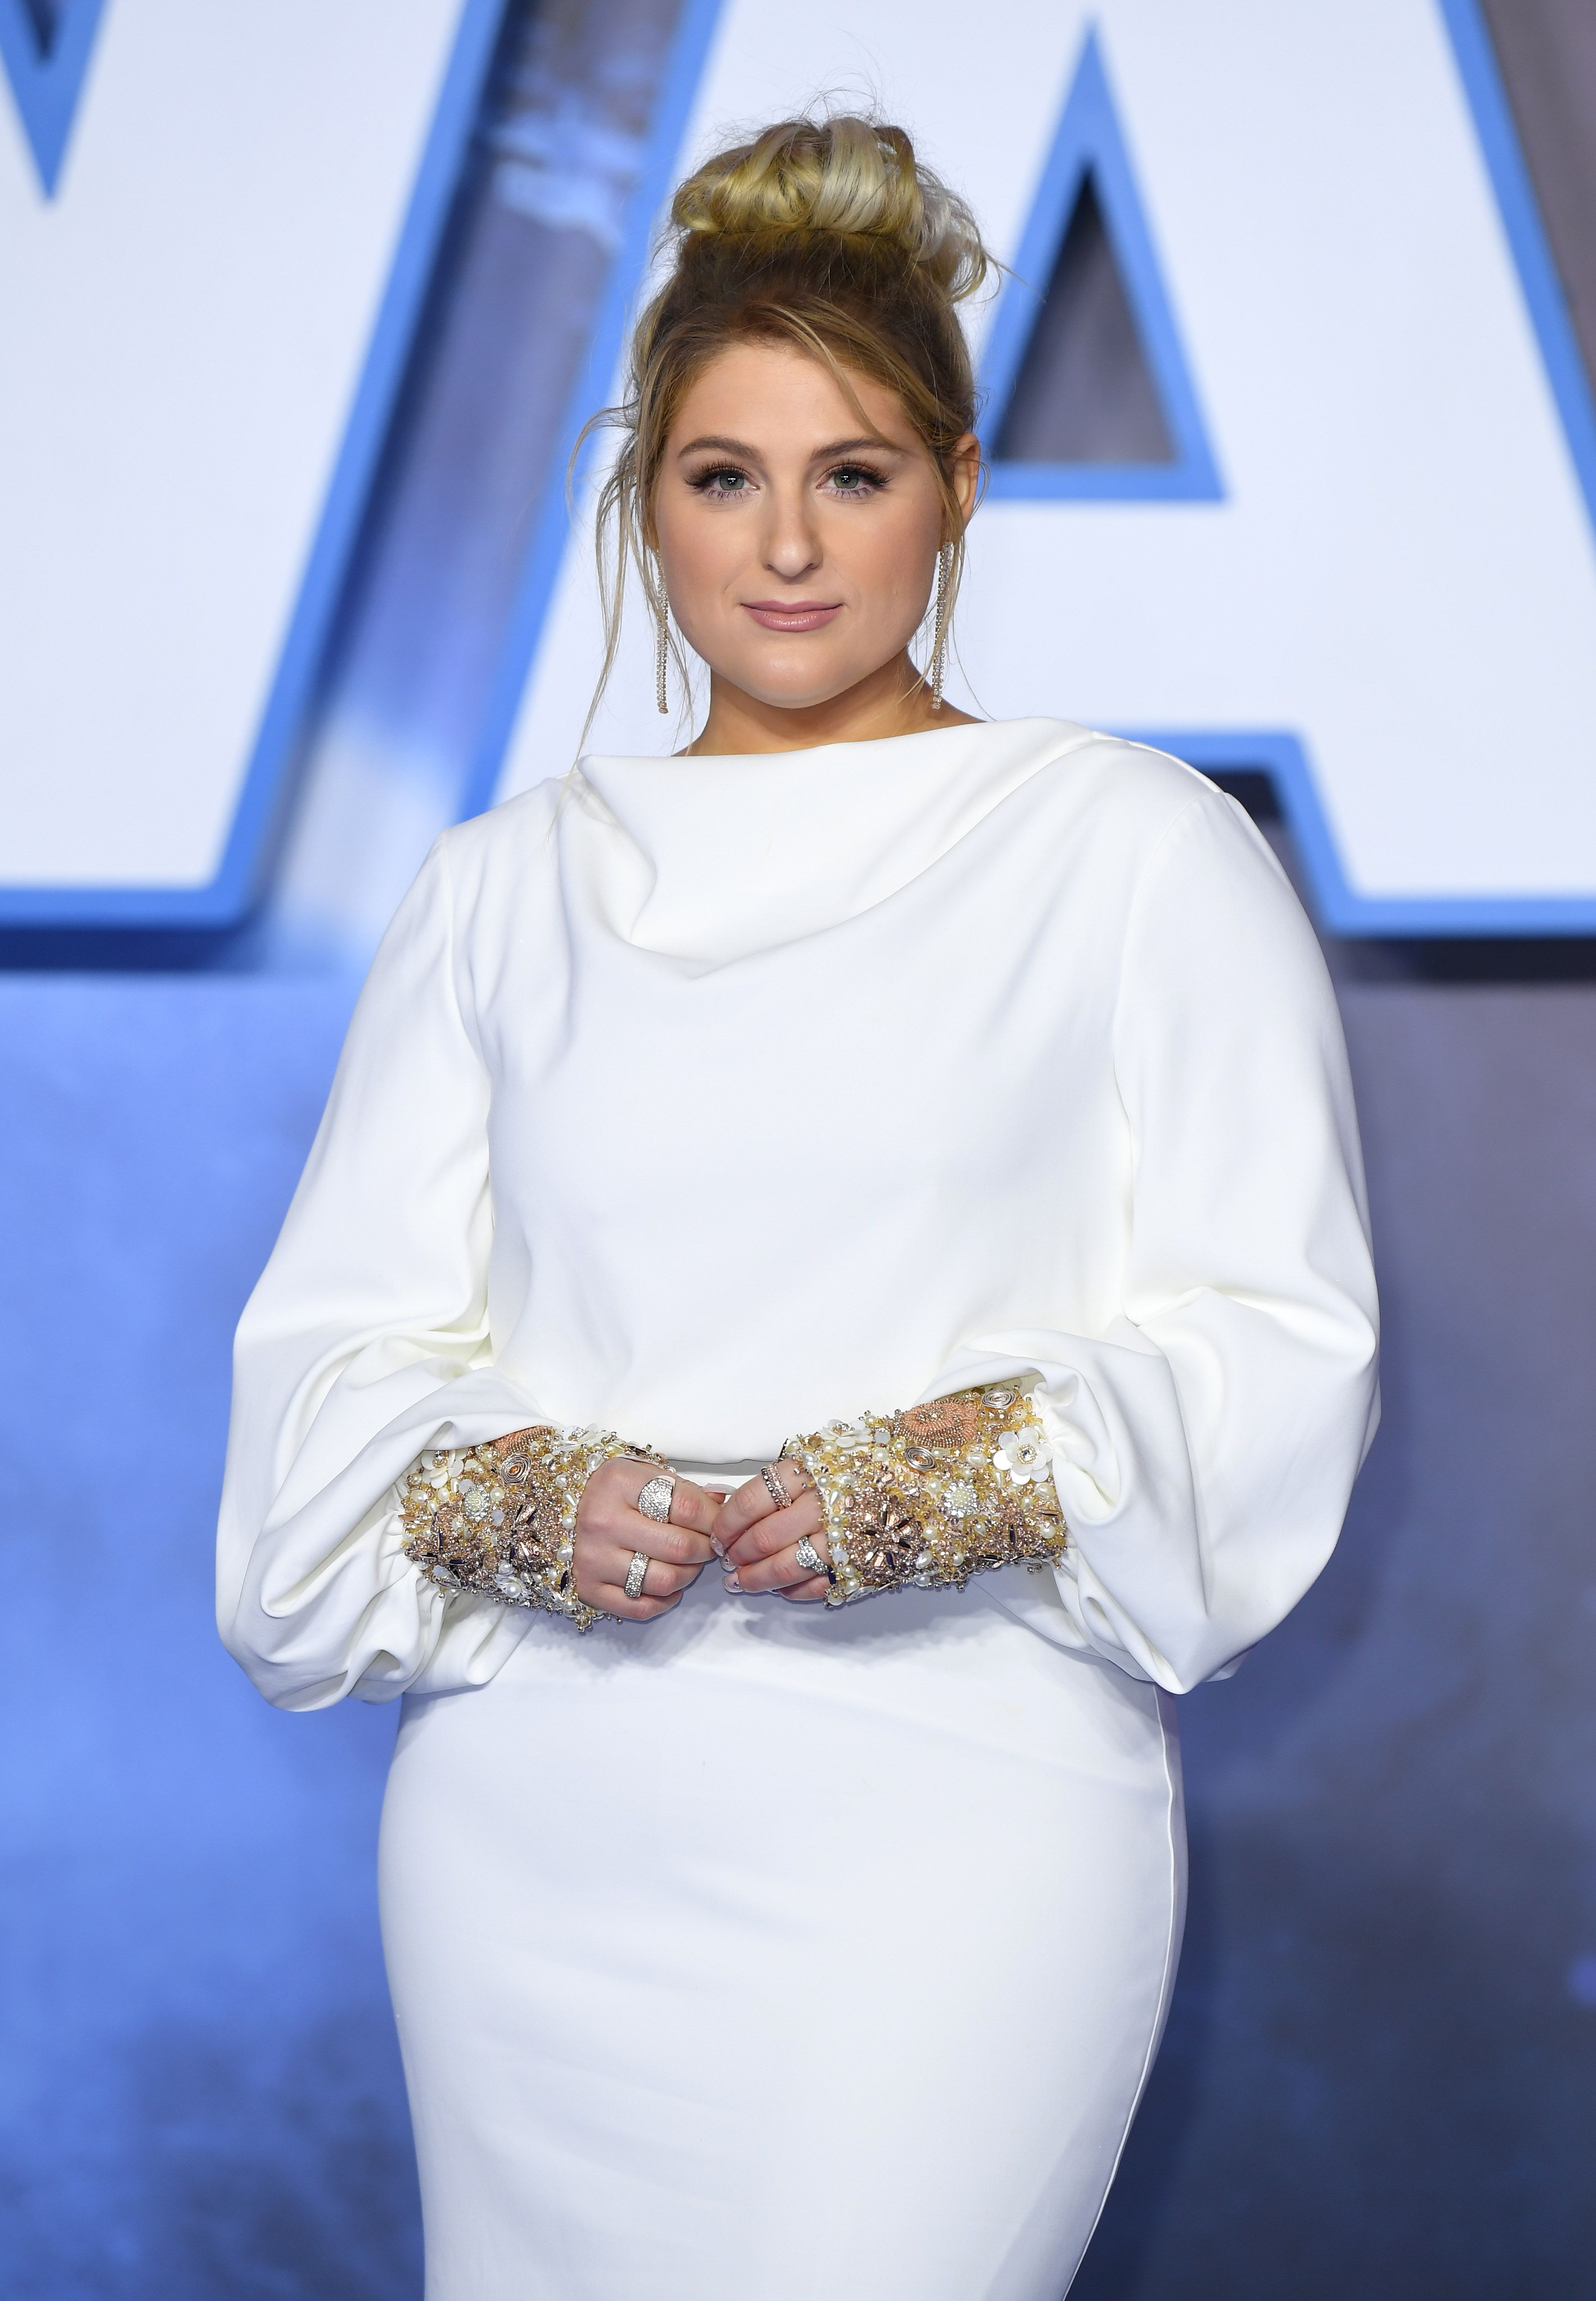 Meghan Trainor Says She Developed a Panic Disorder After Undergoing Vocal Surgeries